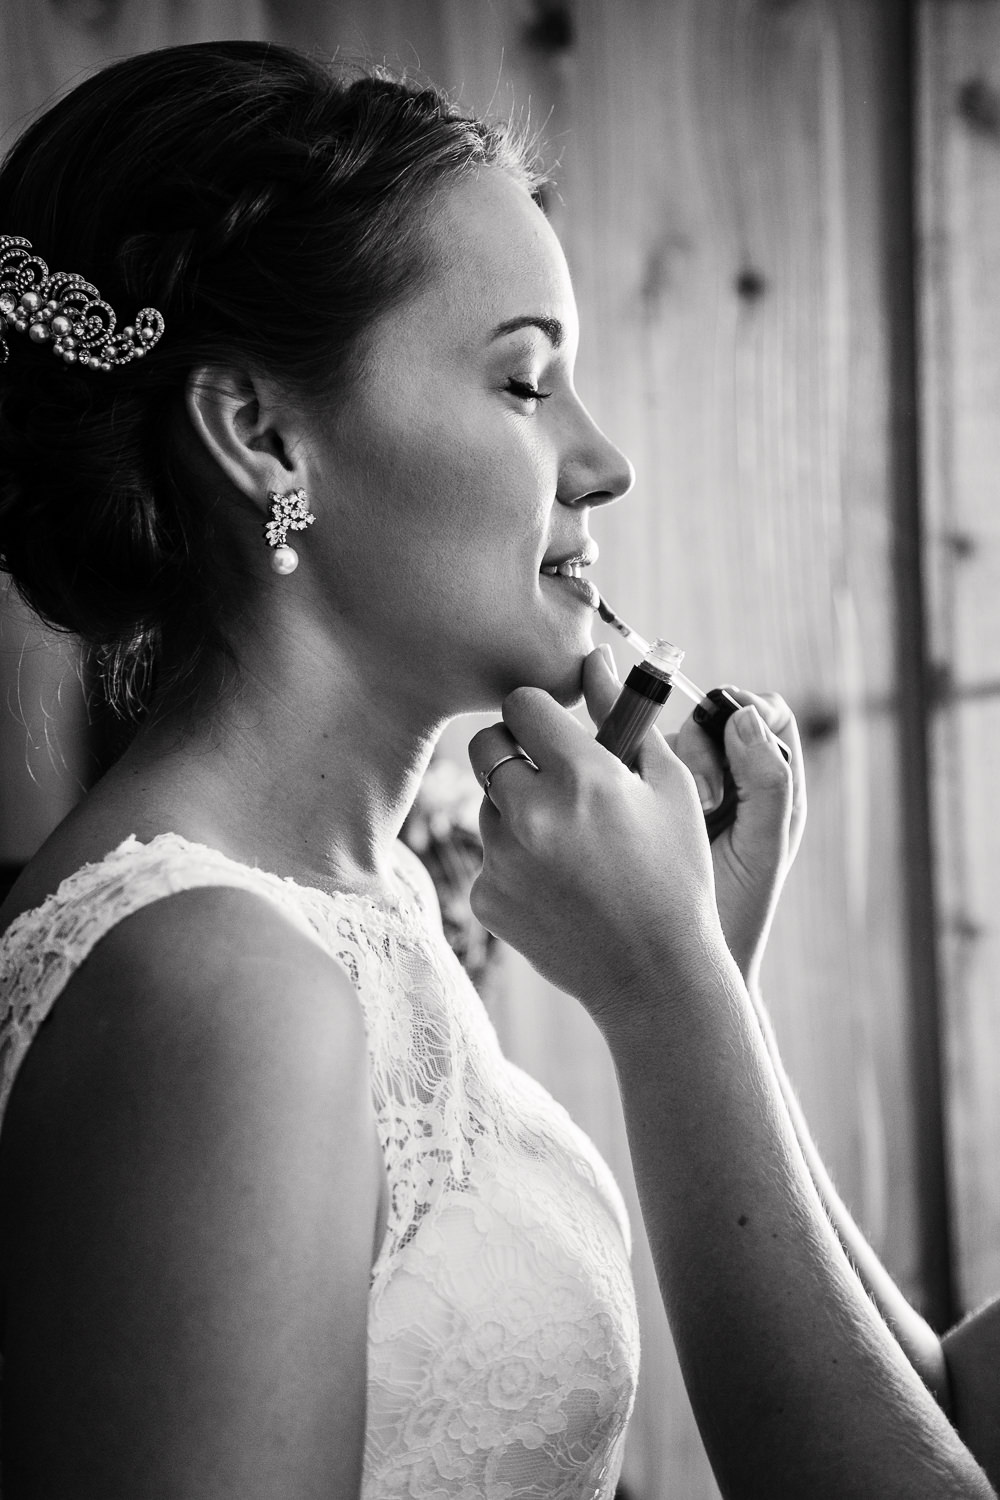 absaroka-beartooth-wilderness-montana-wedding-bride-applies-lipstick.jpg